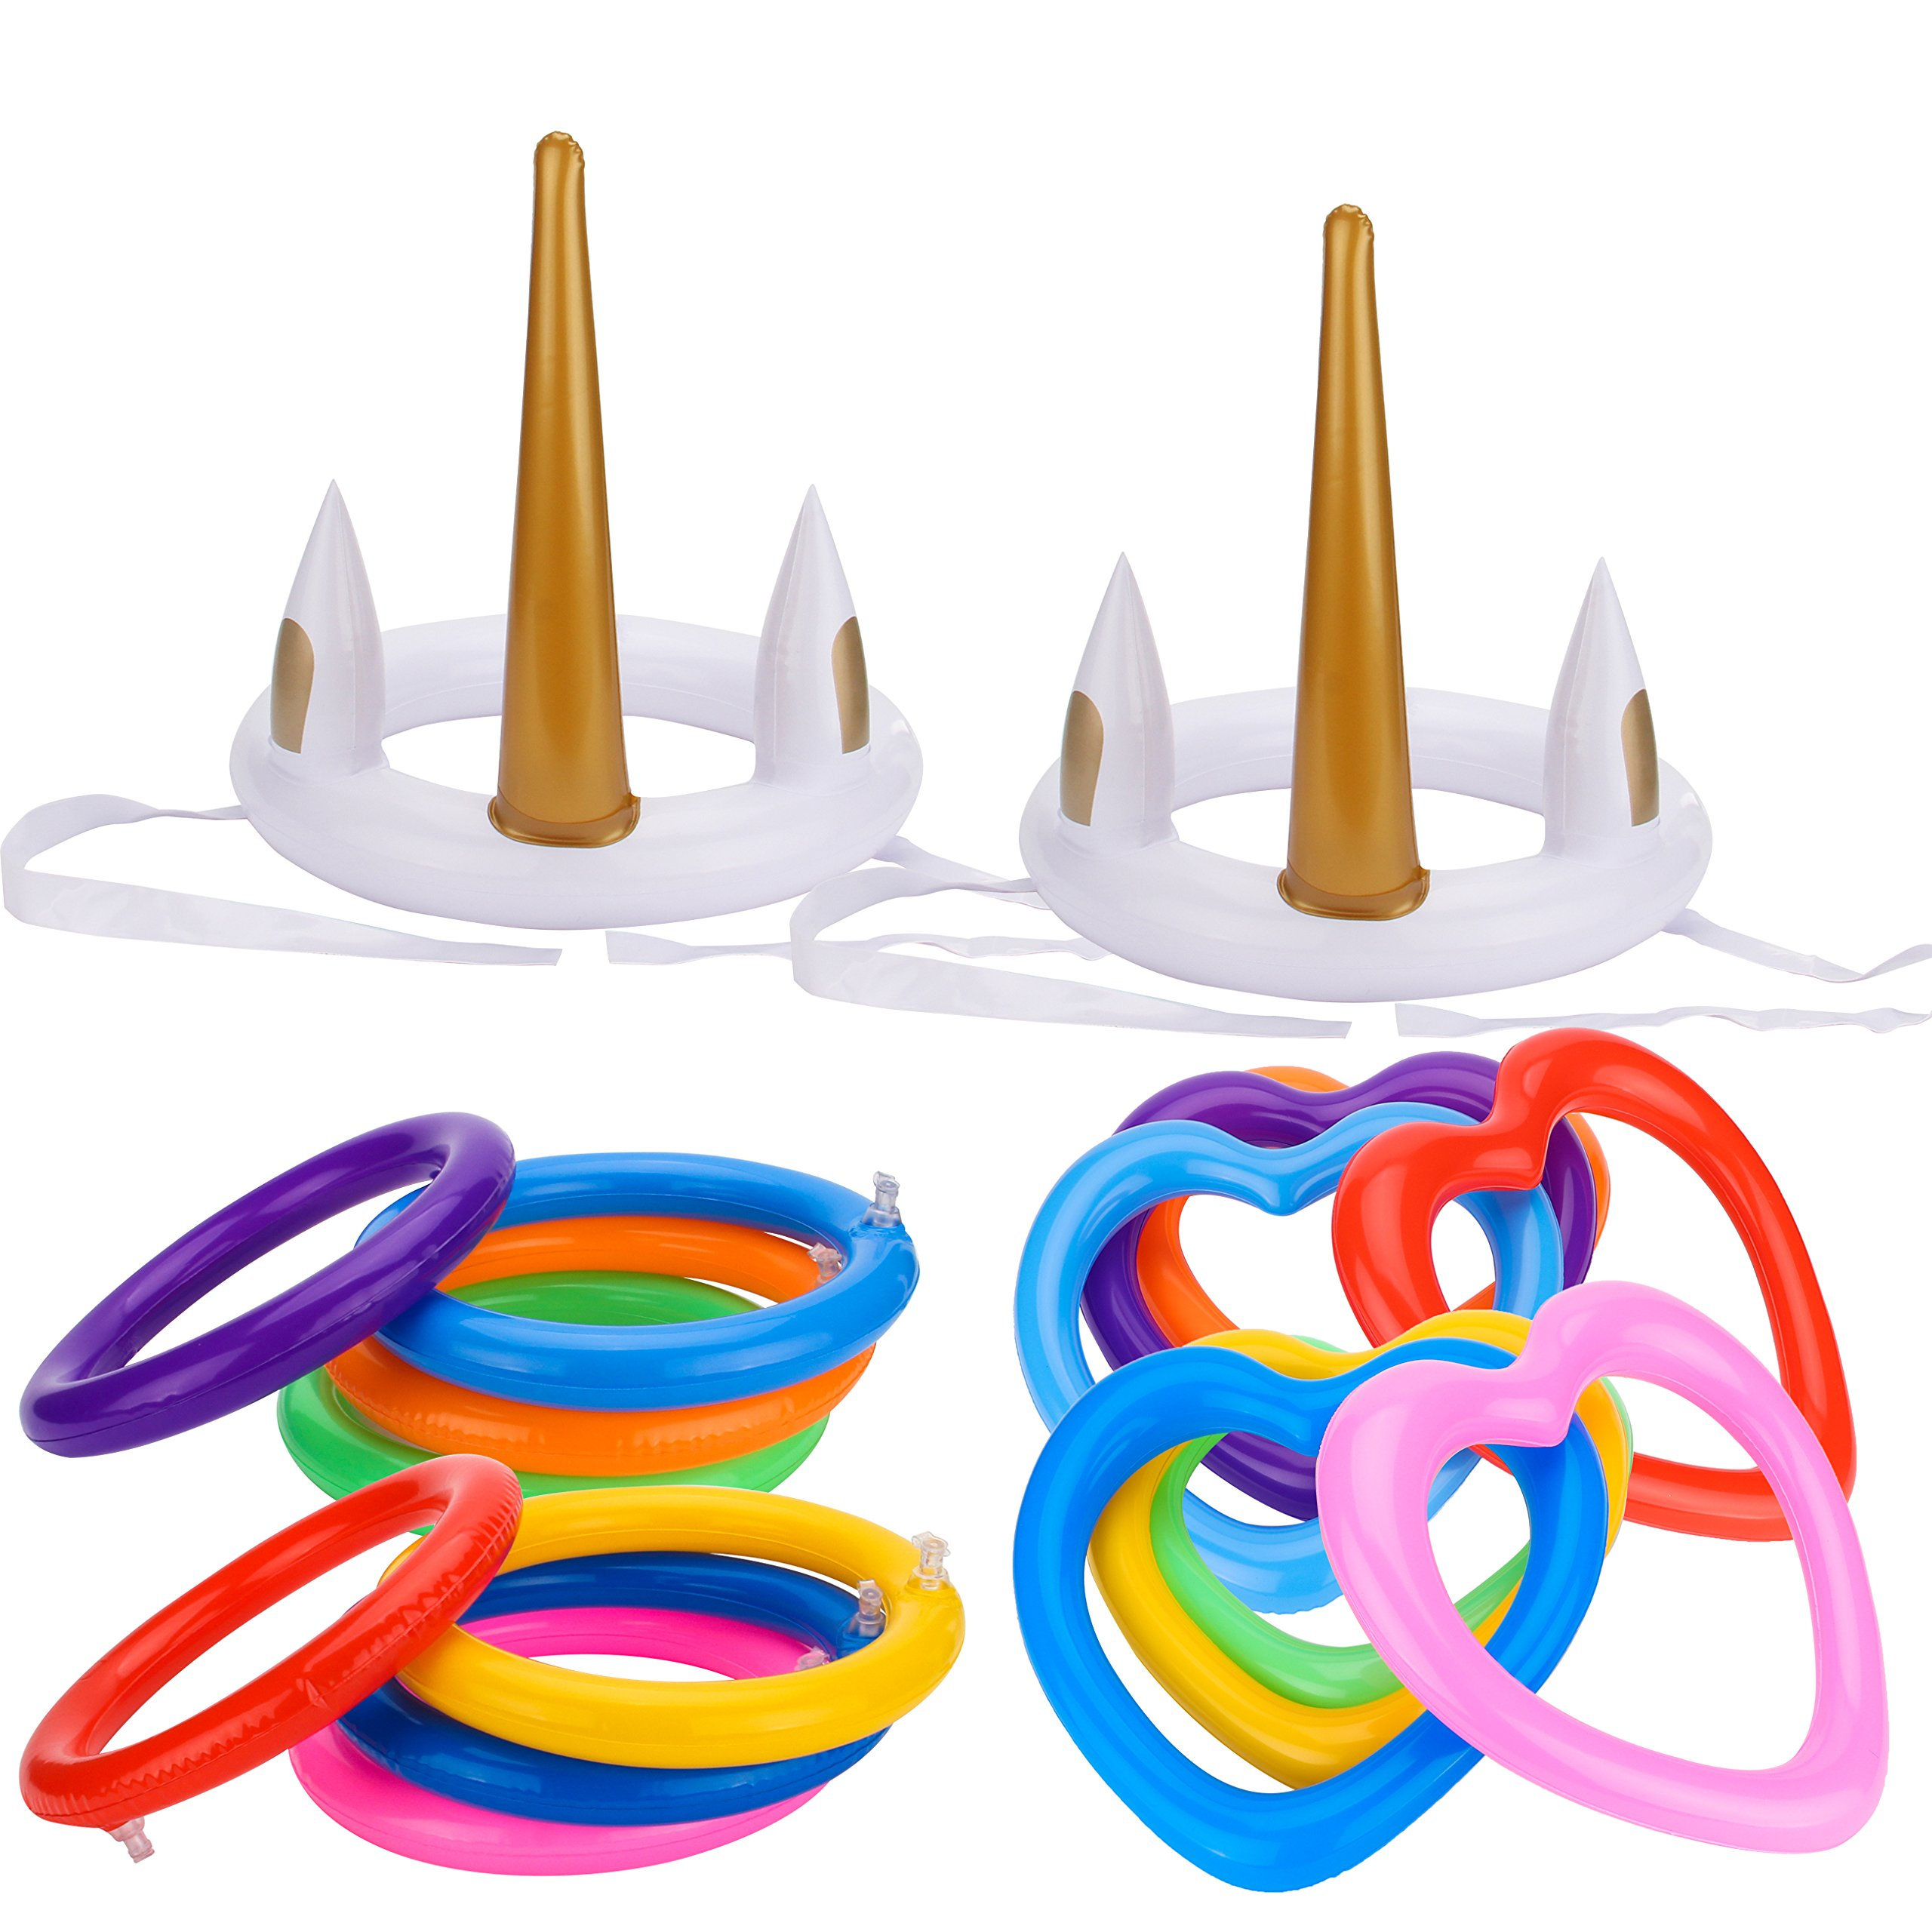 Grobro7 18Pcs Inflatable Unicorn Ring Toss Game Round Heart Ring Pool Garden Backyard Outdoor Bridal Shower Booth Party Favor Supplies